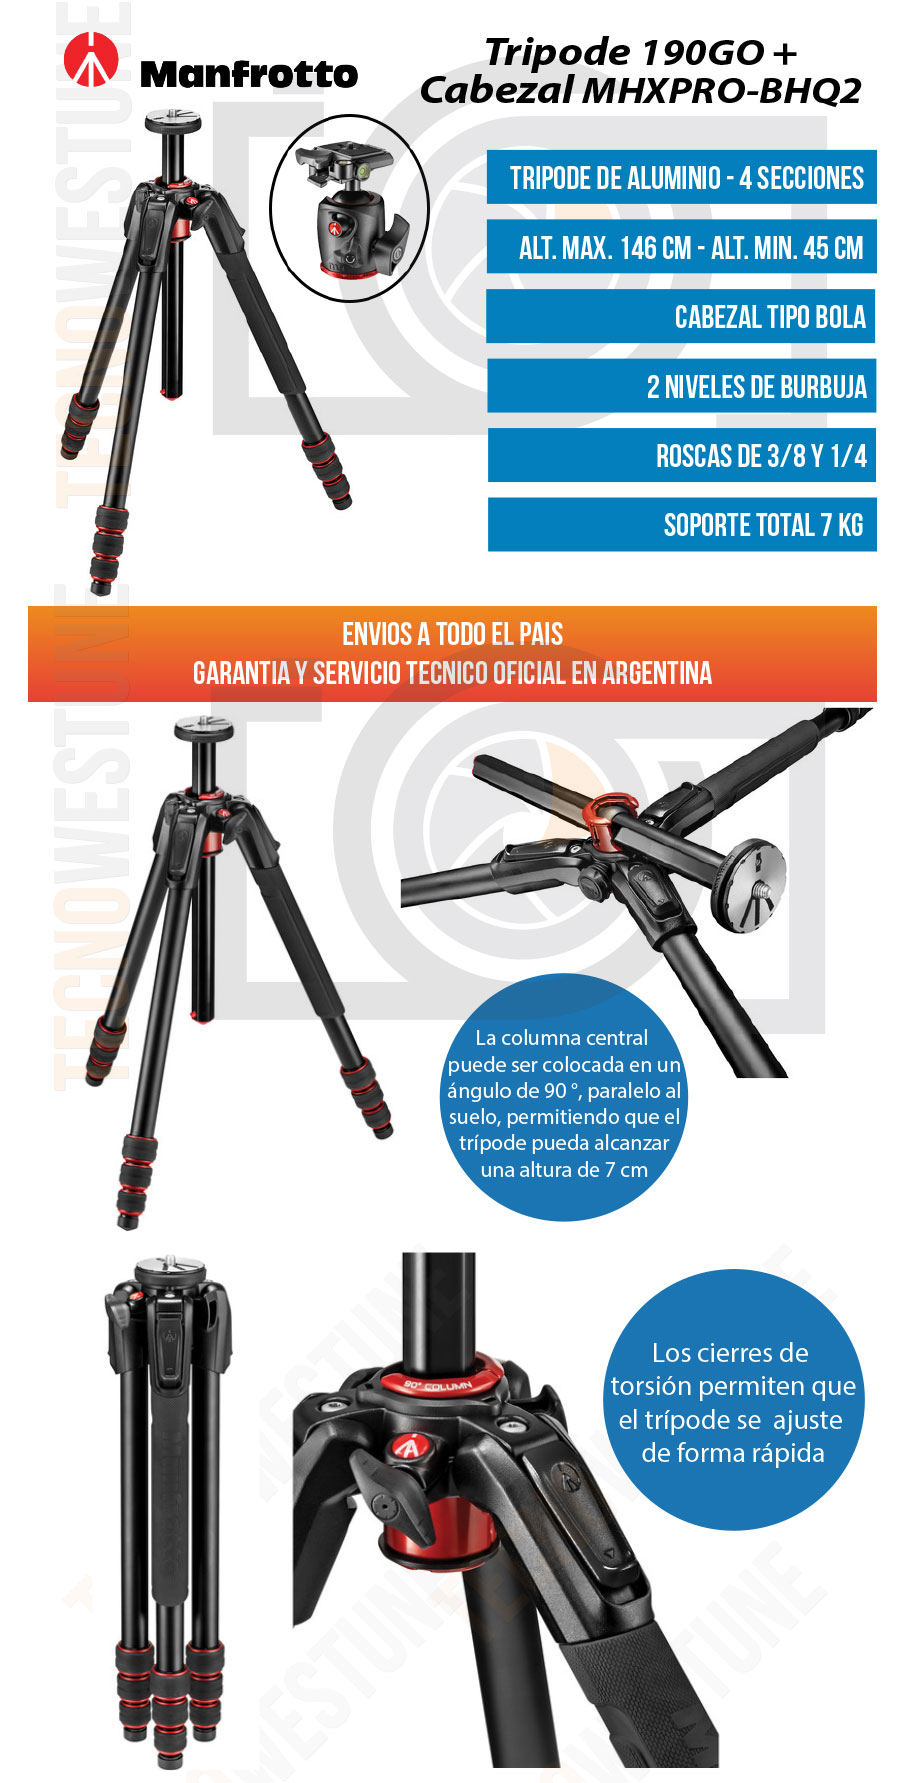 Manfrotto-190GO-+-MHXPRO-BHQ2-a